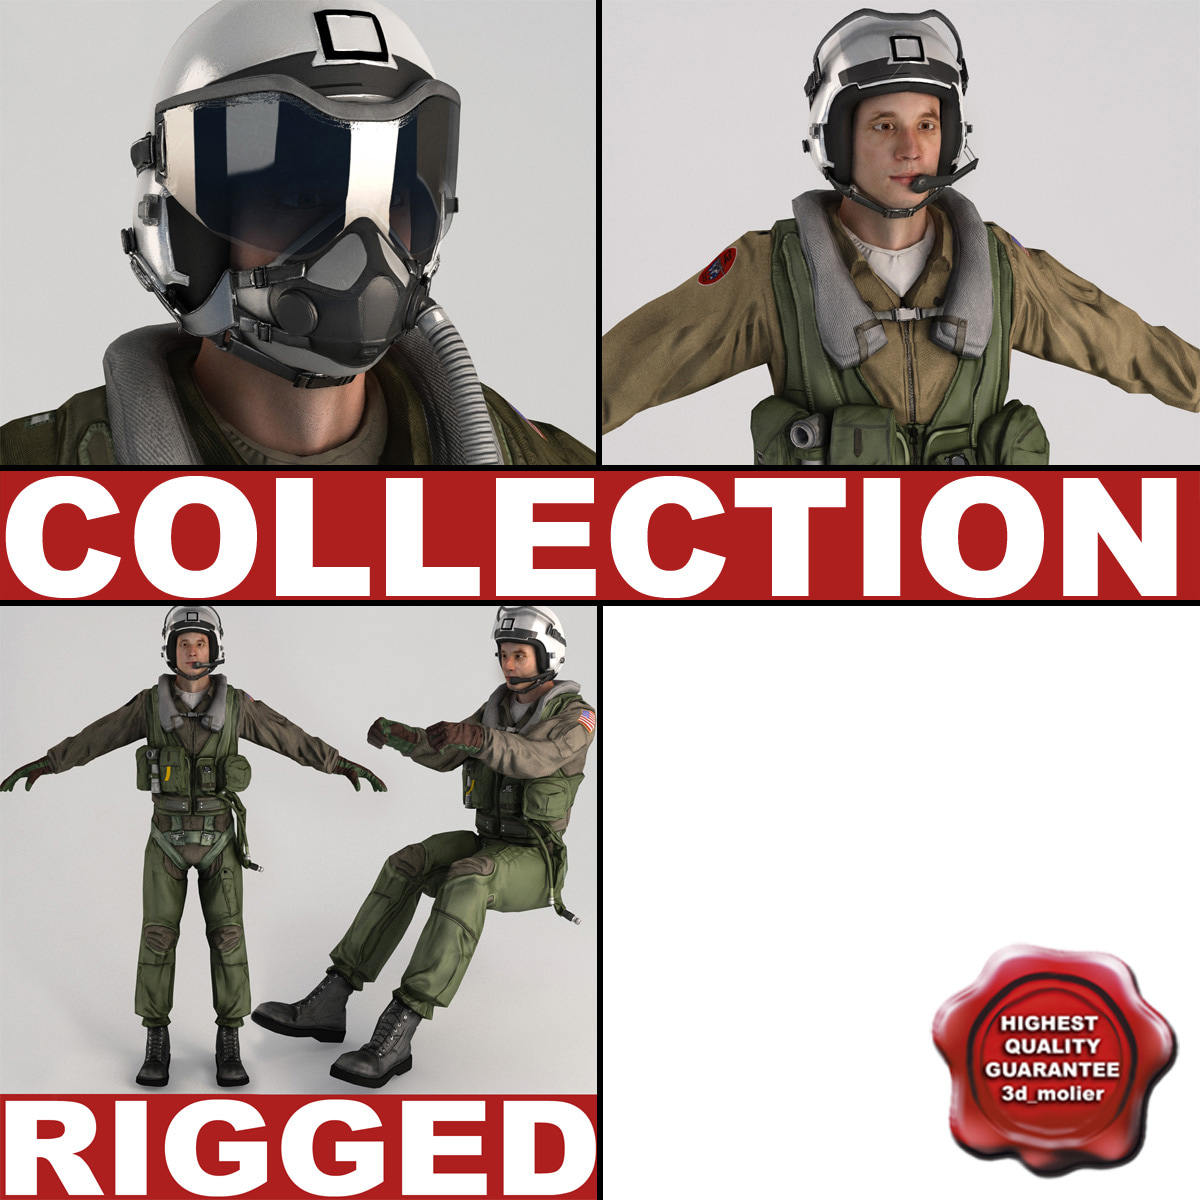 Military_Pilots_Rigged_Collection_000.jpg